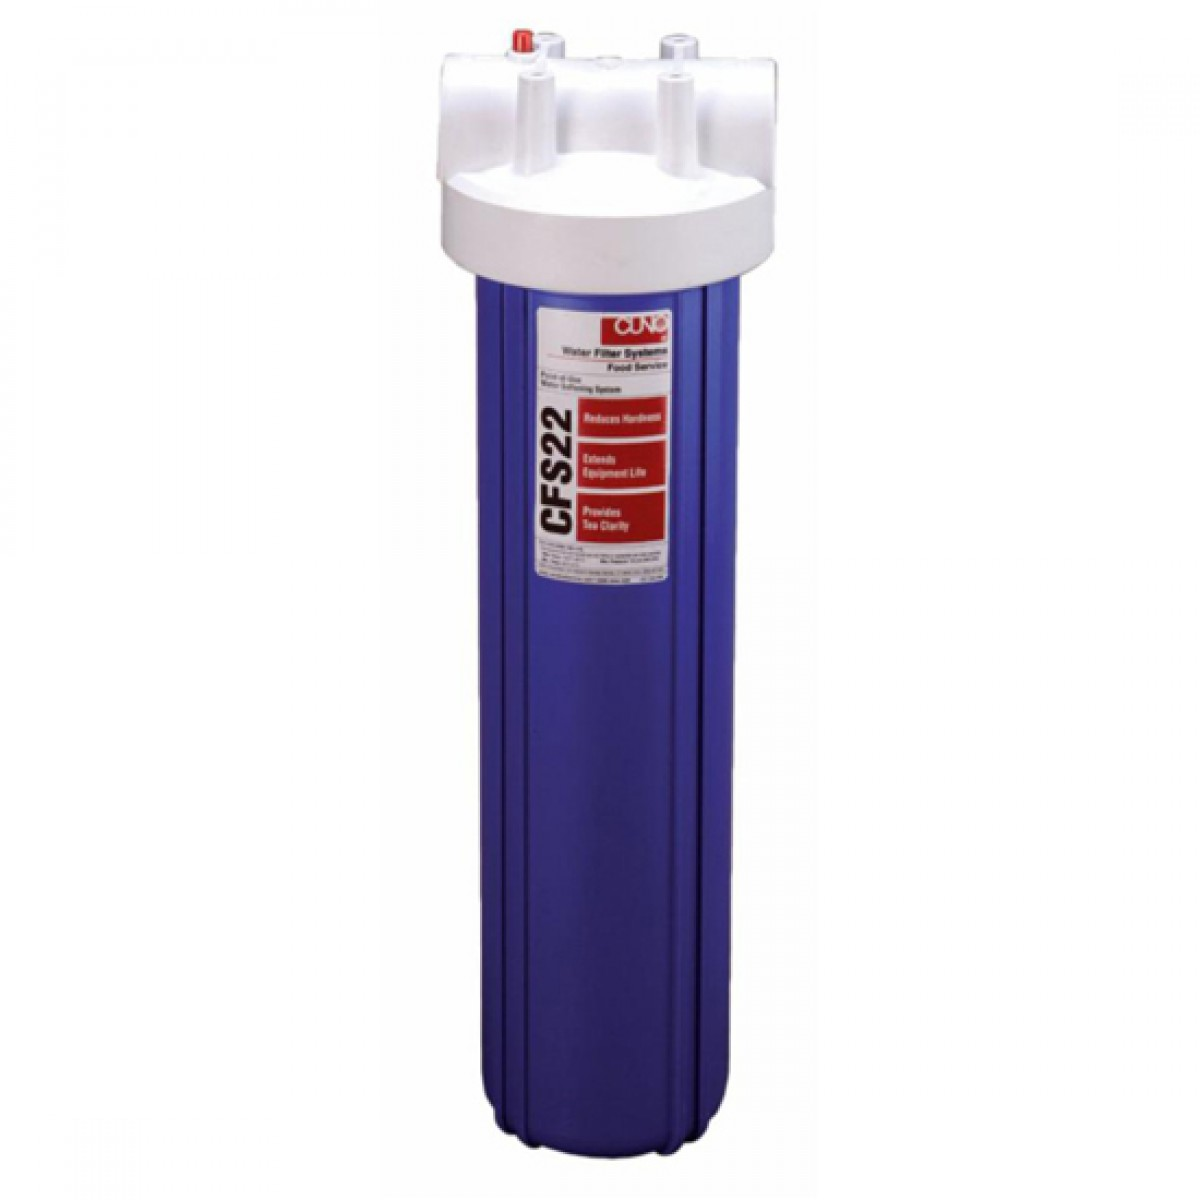 Cuno Water Filtration 87